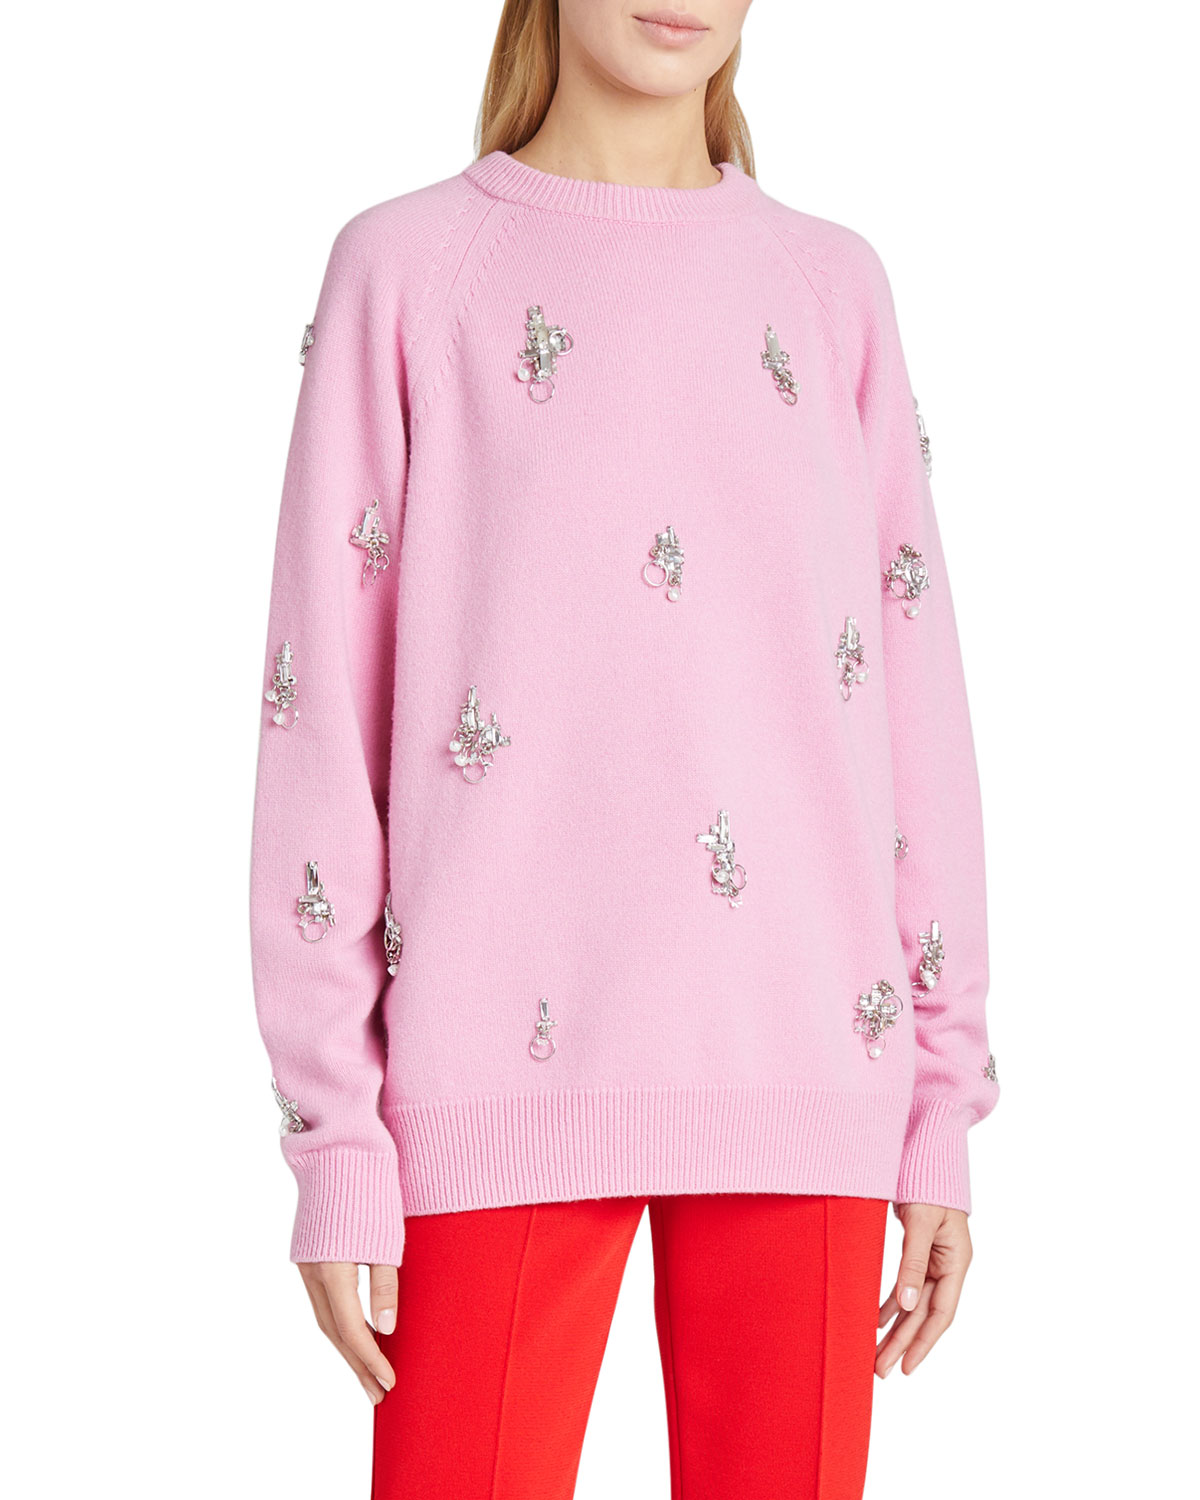 Givenchy Knits 7GG PIXEL EMBROIDERED SWEATER